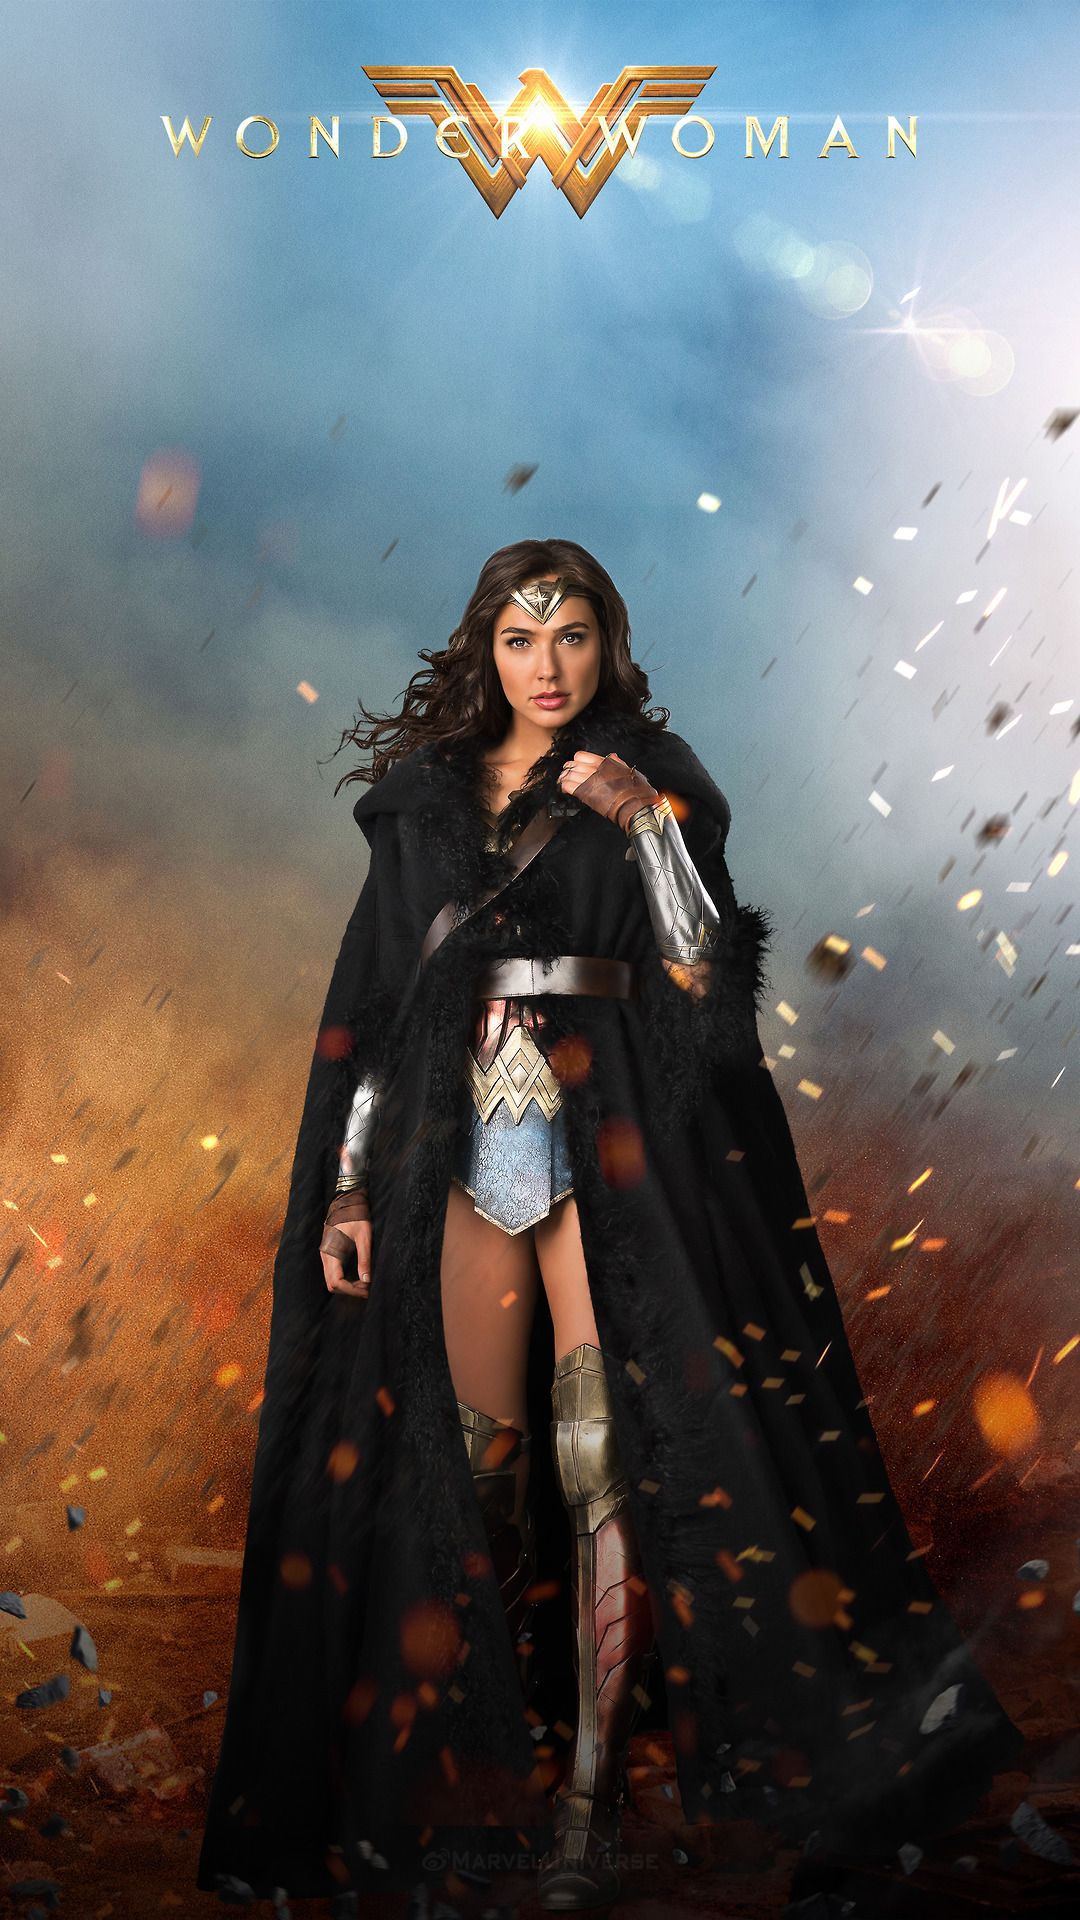 Wonder Woman wallpapers Source MUCN Movies Pinterest Wonder